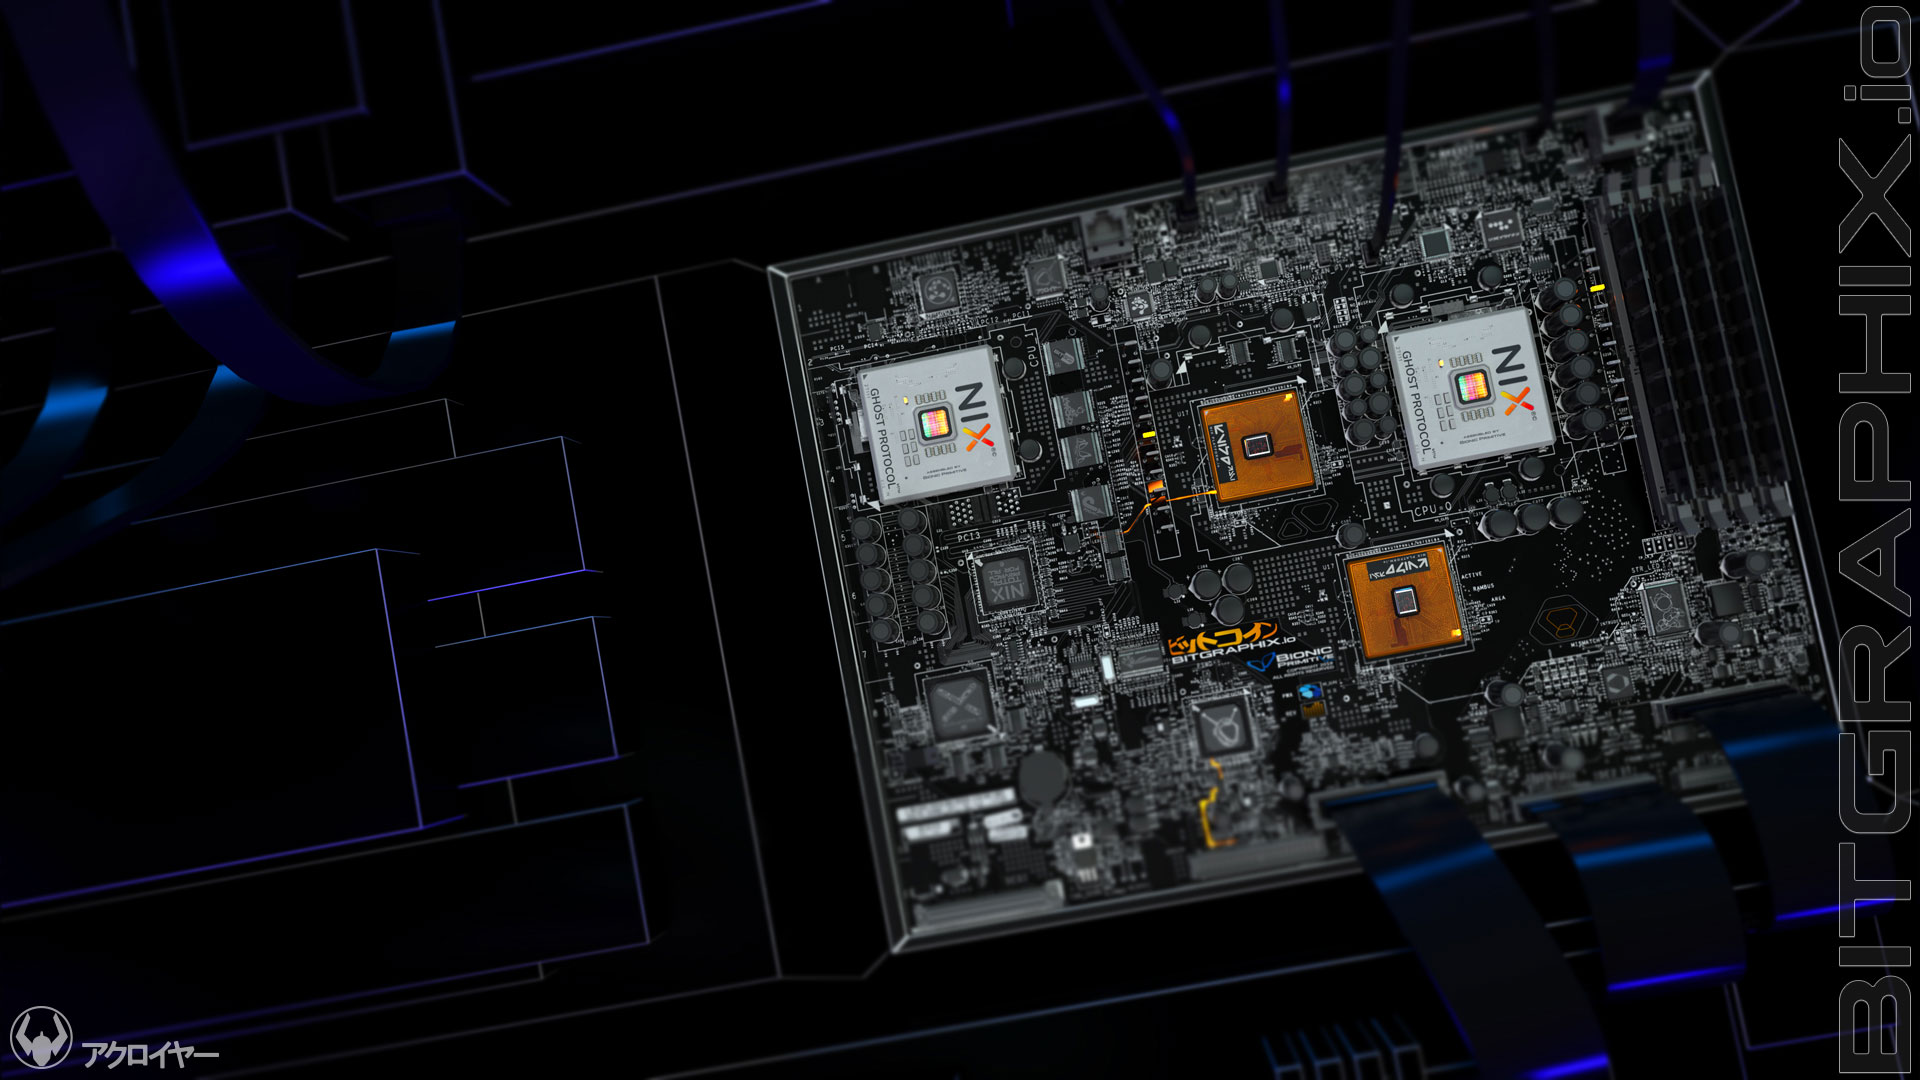 NIX-Platform-Ghost-Protocol-promotional-animation-still-frame-motherboard-greeble-3d-vfx-redshift-render